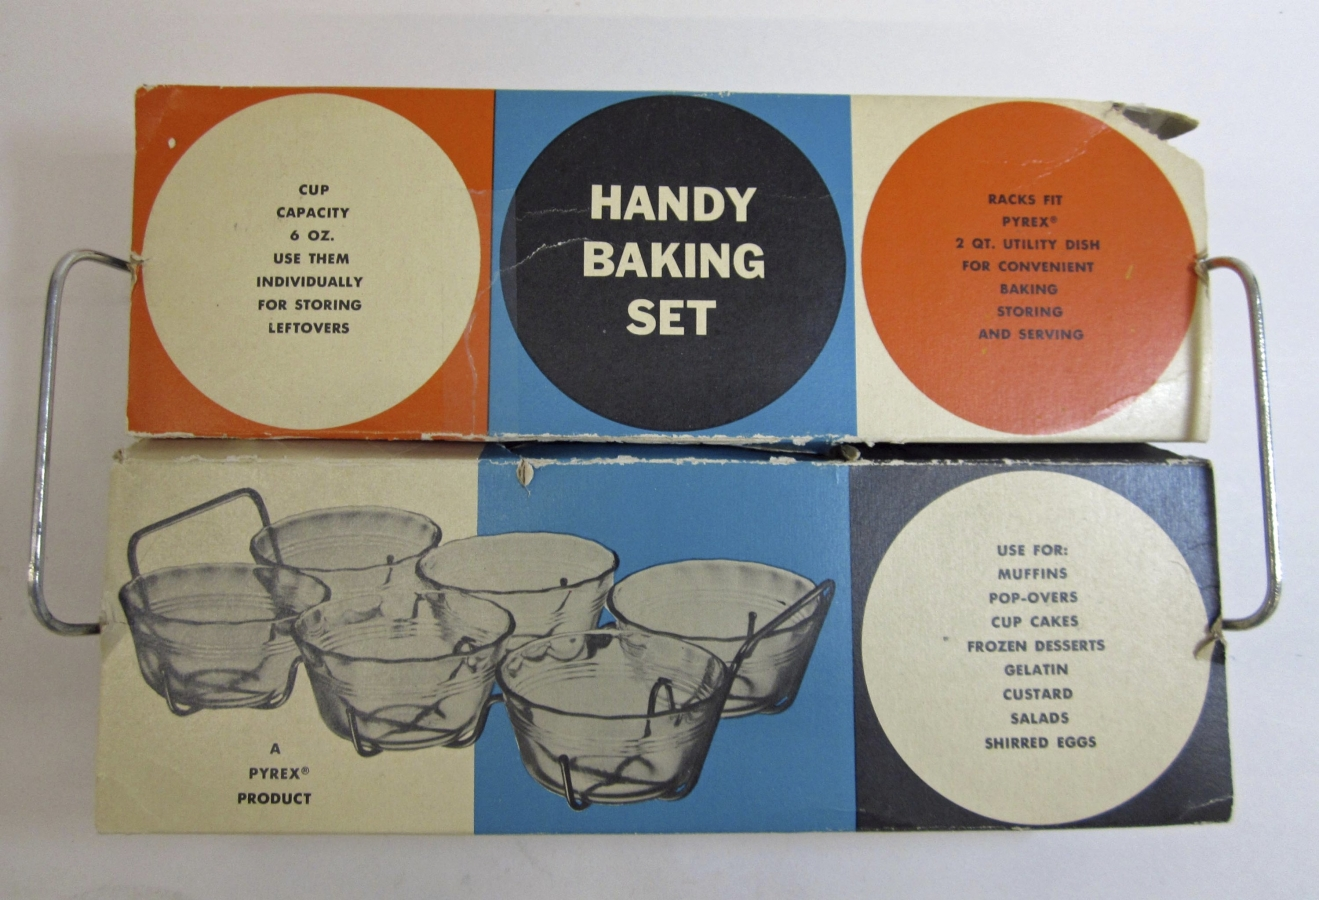 Pyrex Handy Baking Set in Original Packaging